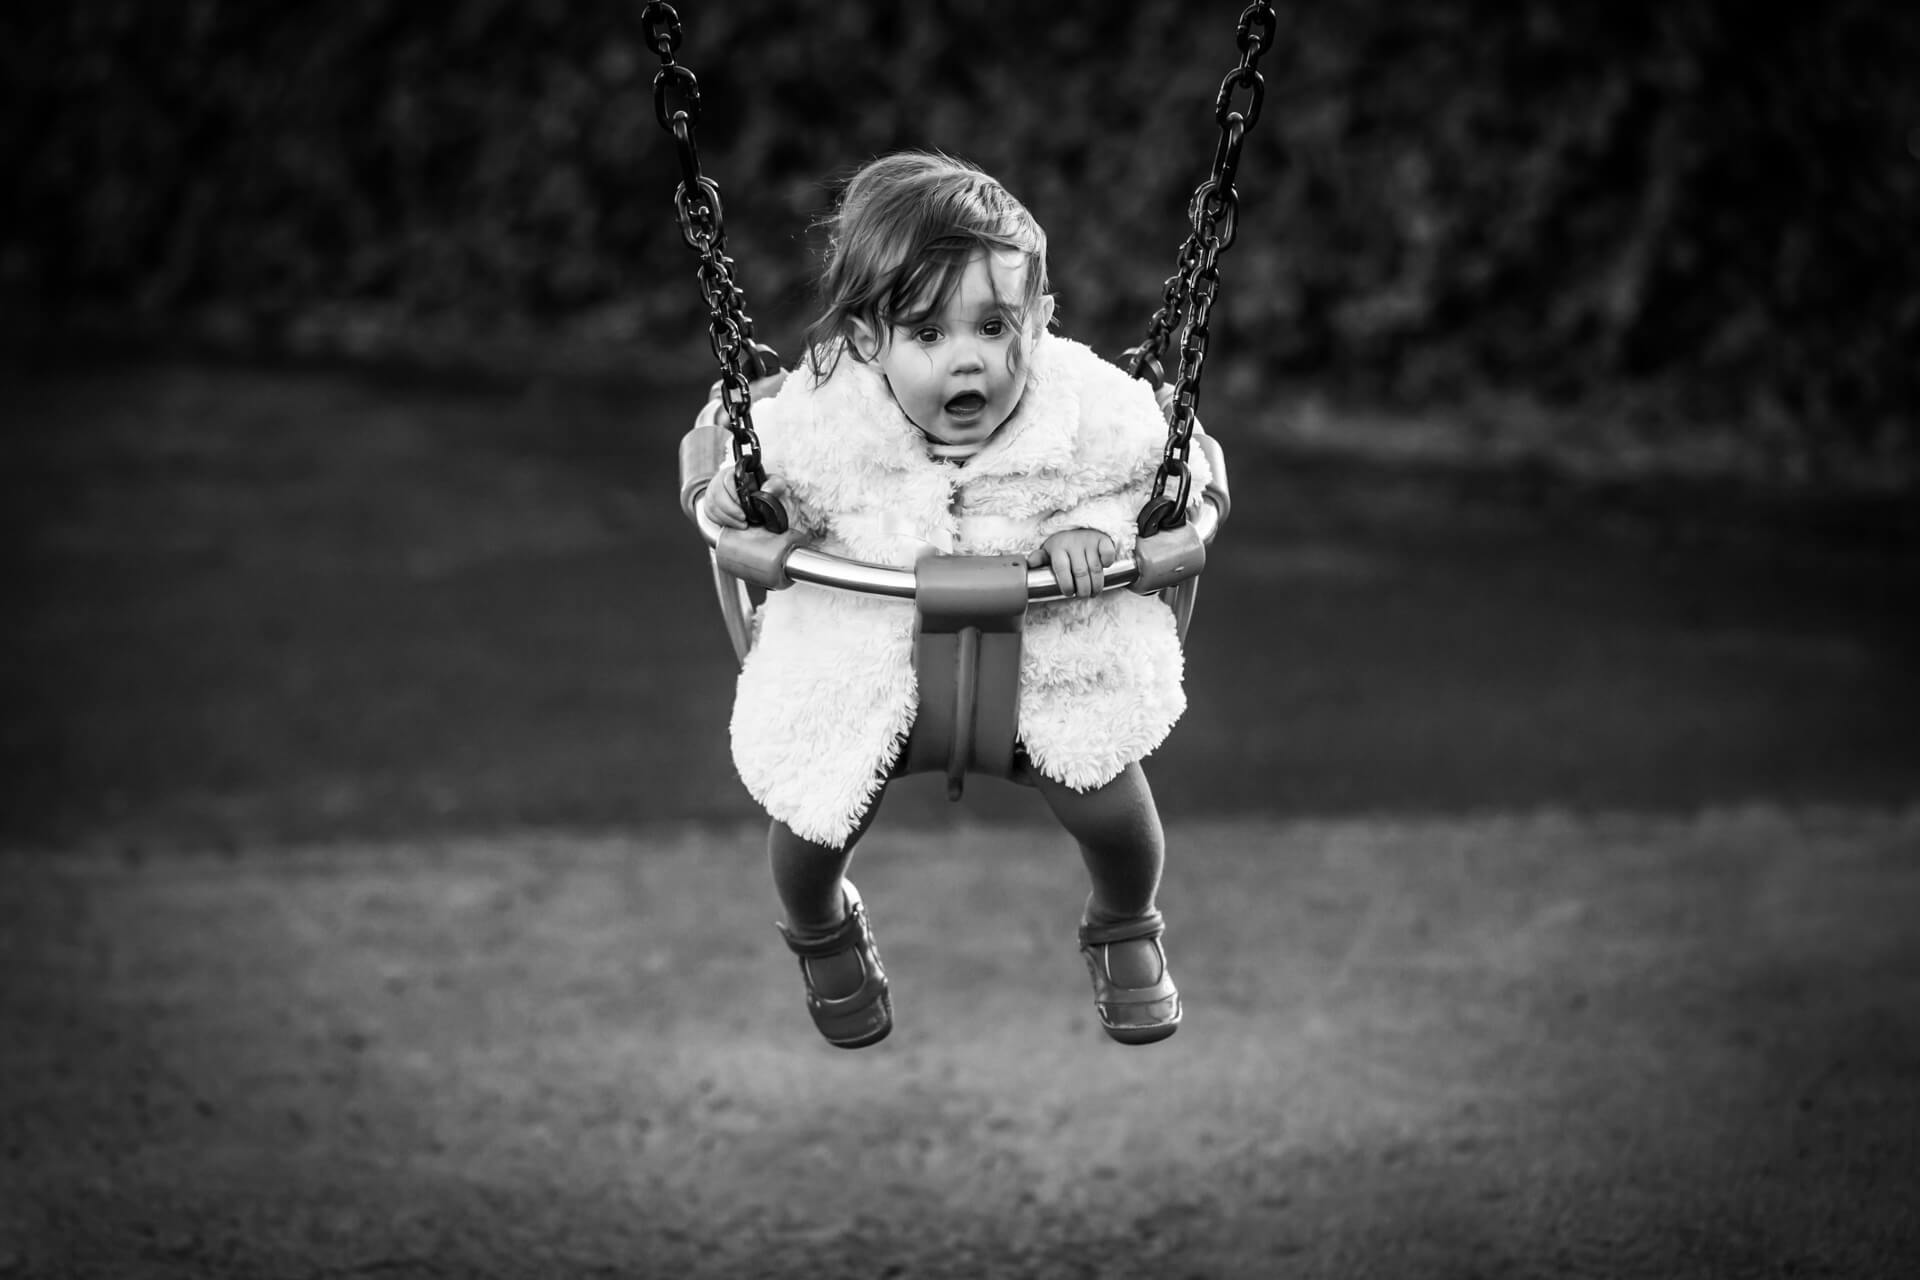 toddler swinging on a swing